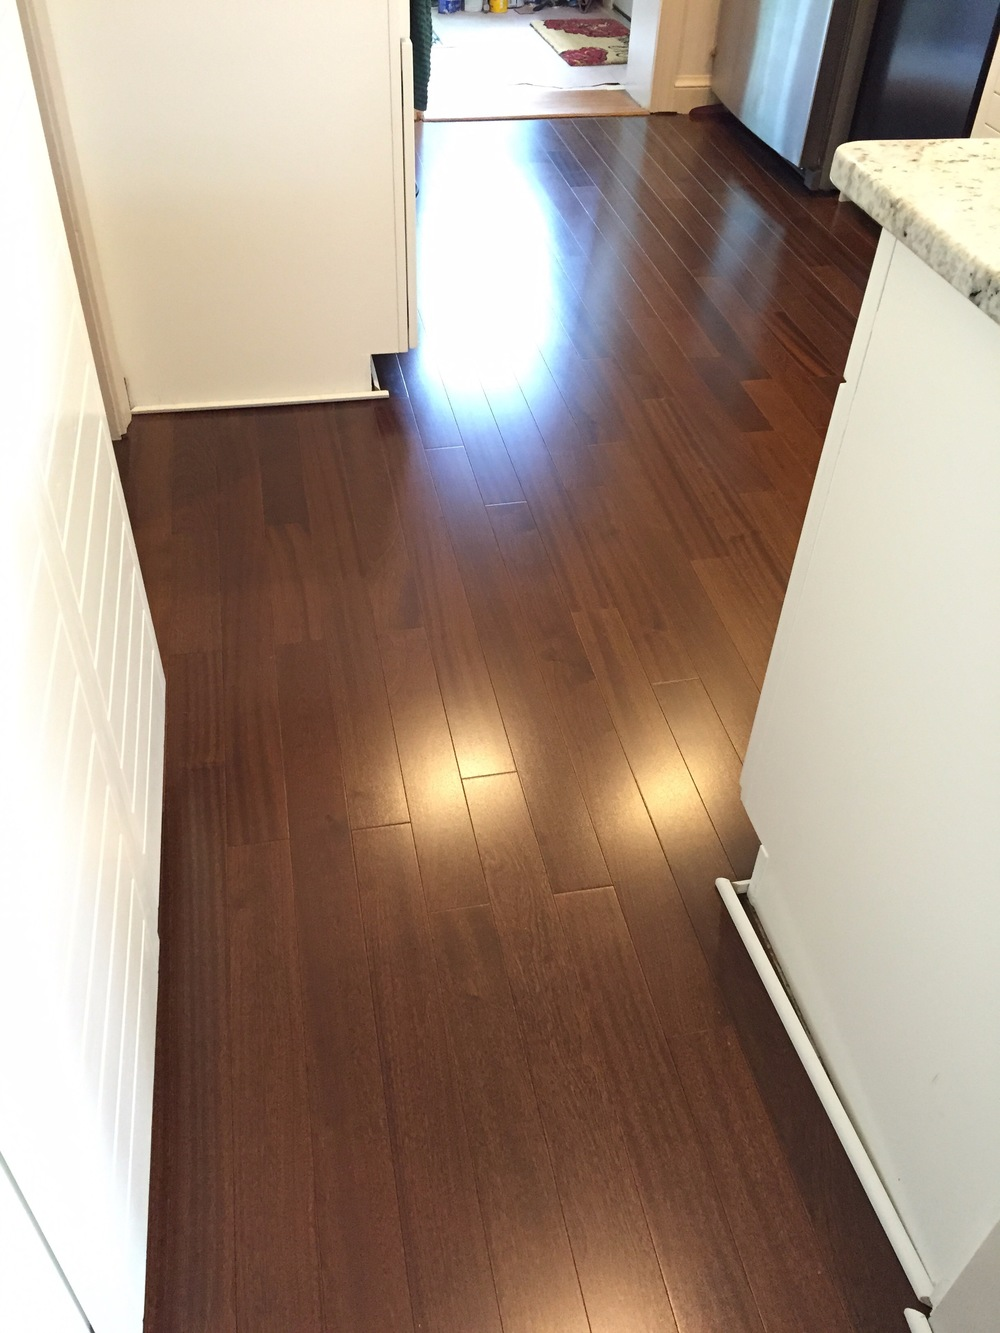 1 - Wood Kitchen Floor.jpg